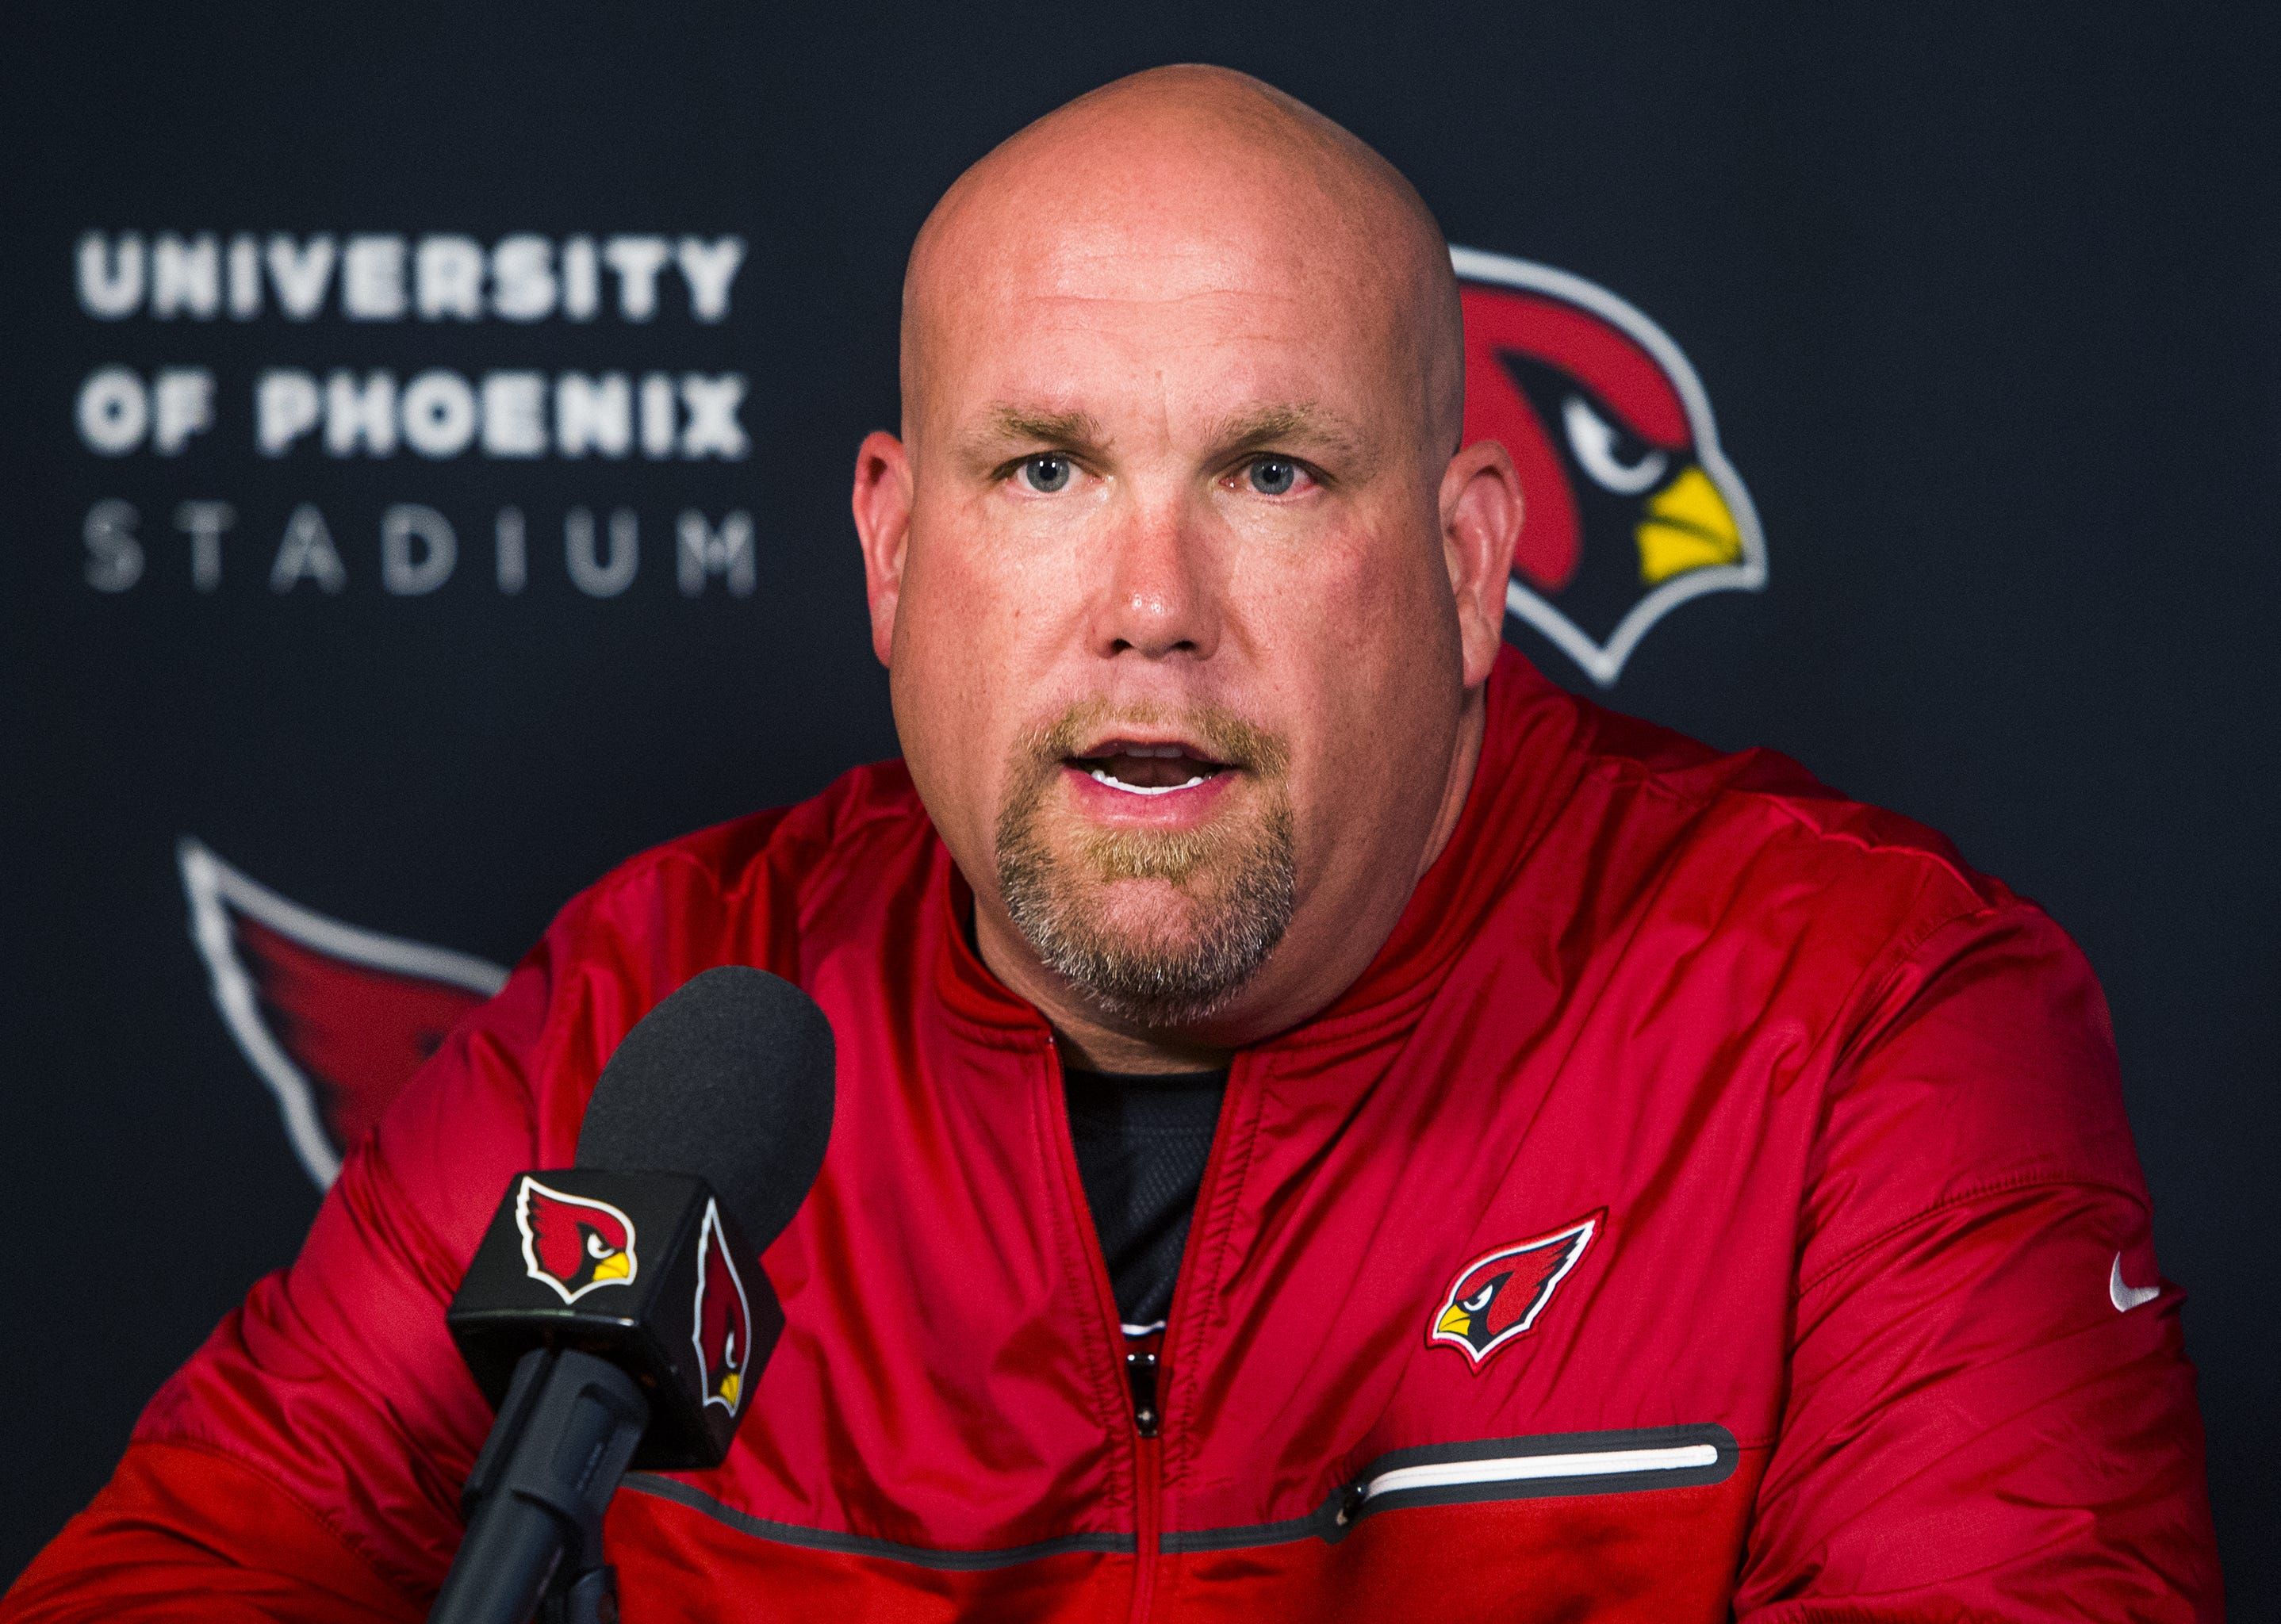 Arizona Cardinals GM Steve Keim pleads guilty to extreme DUI, is suspended 5 weeks by team | AZ Central